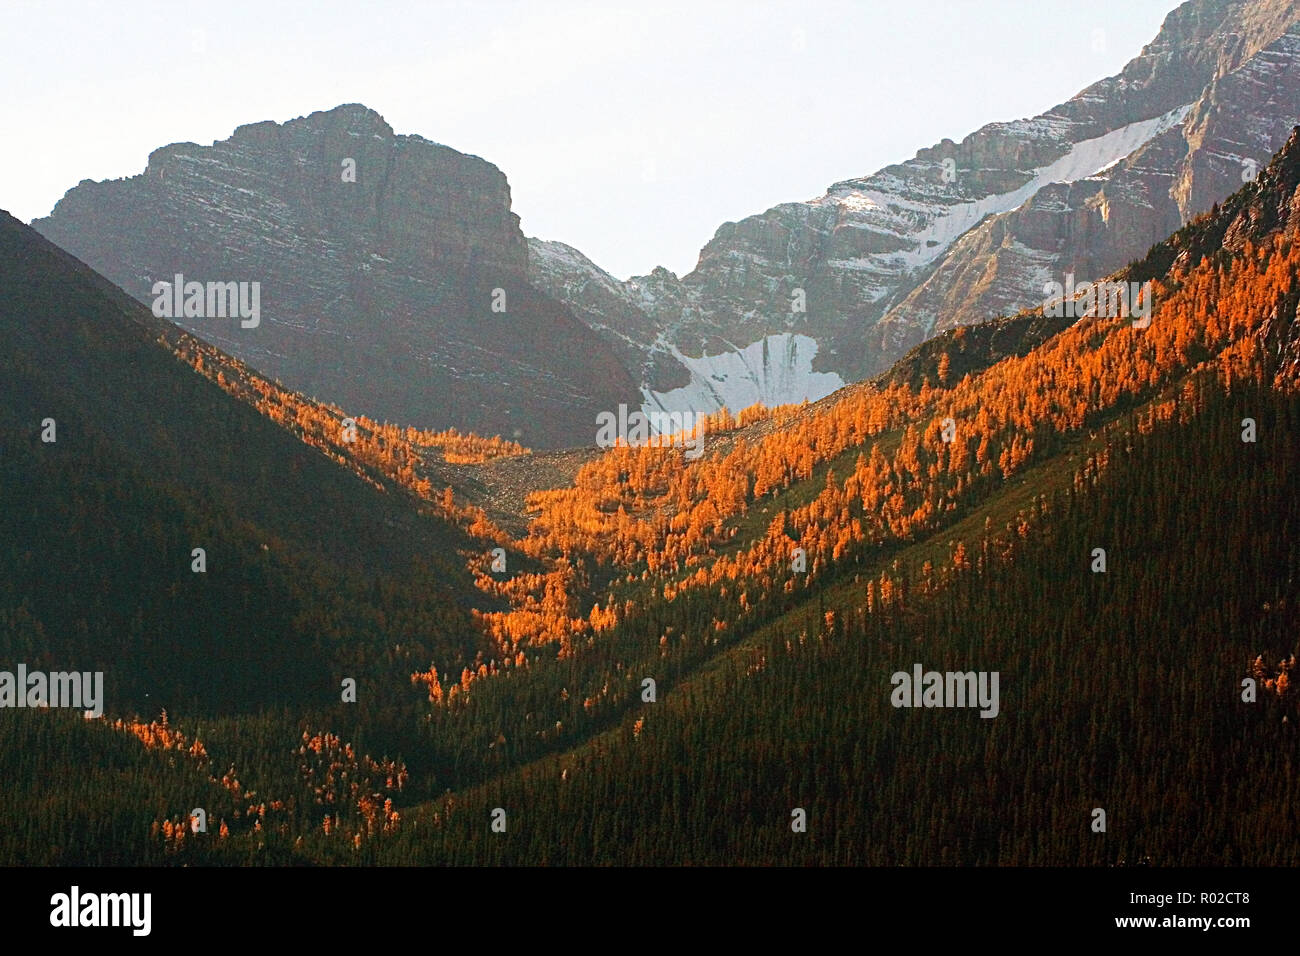 Larch trees. These needled conifers look like evergreens in spring and summer, but in the fall the needles turn golden yellow and drop to the ground. - Stock Image